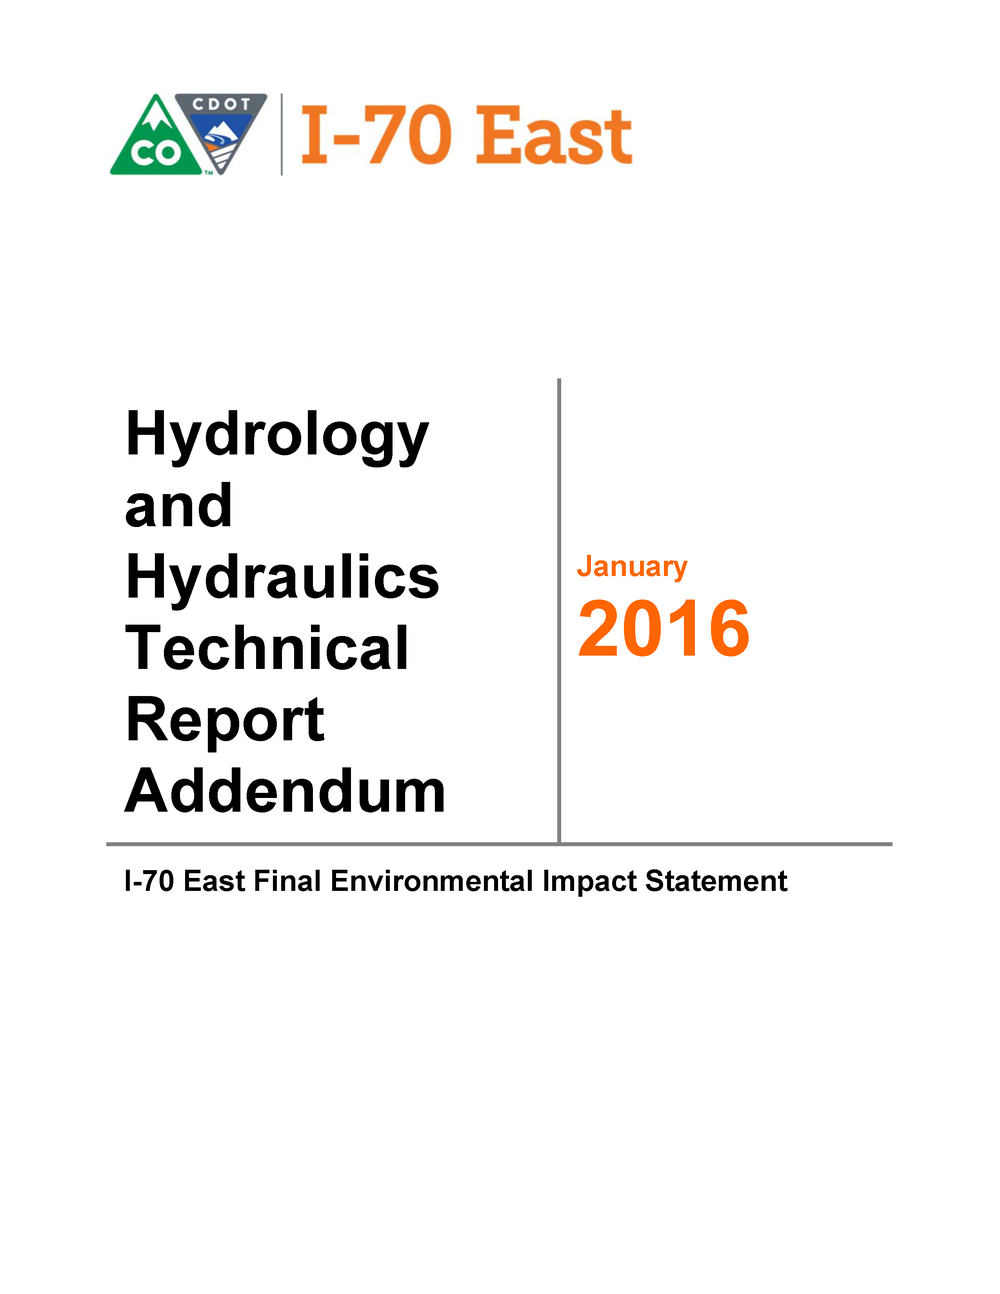 Hydrology & Hydraulics Report Addendum